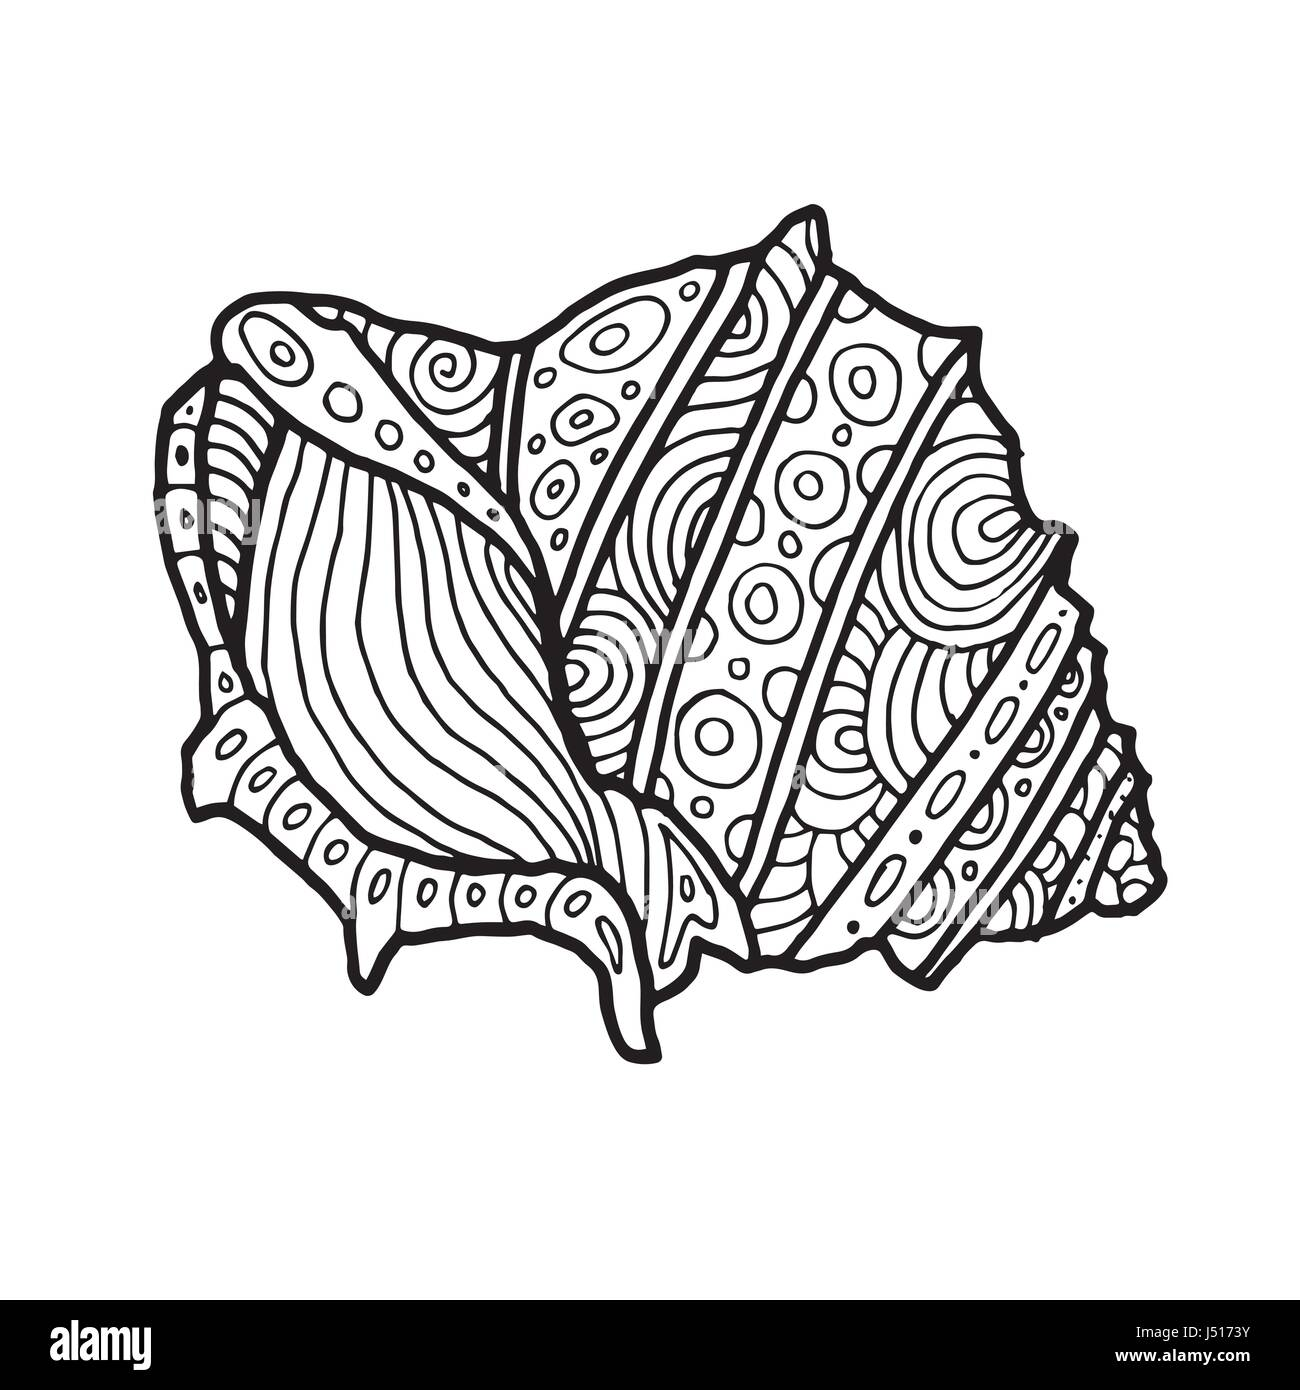 Decorative Zentangle Sea Shell Illustration Outline Drawing Coloring Book For Adult And Children Page Vector Printable Typography Pos